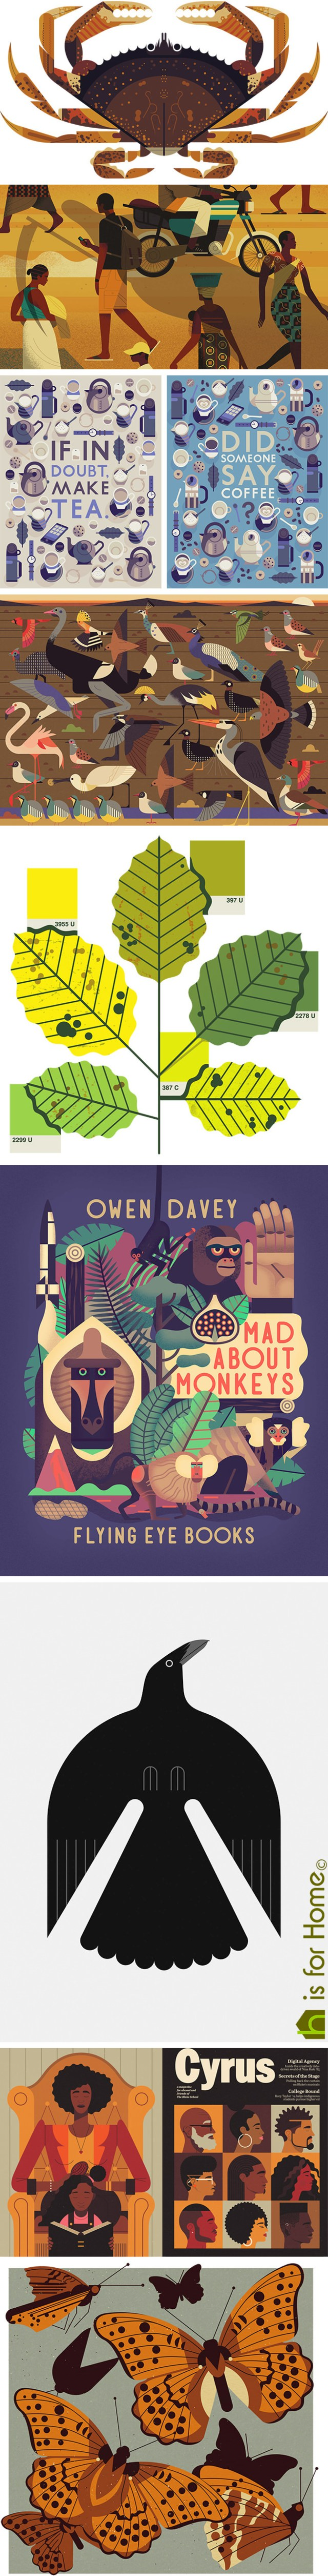 Mosaic of Owen Davey illustrations | H is for Home